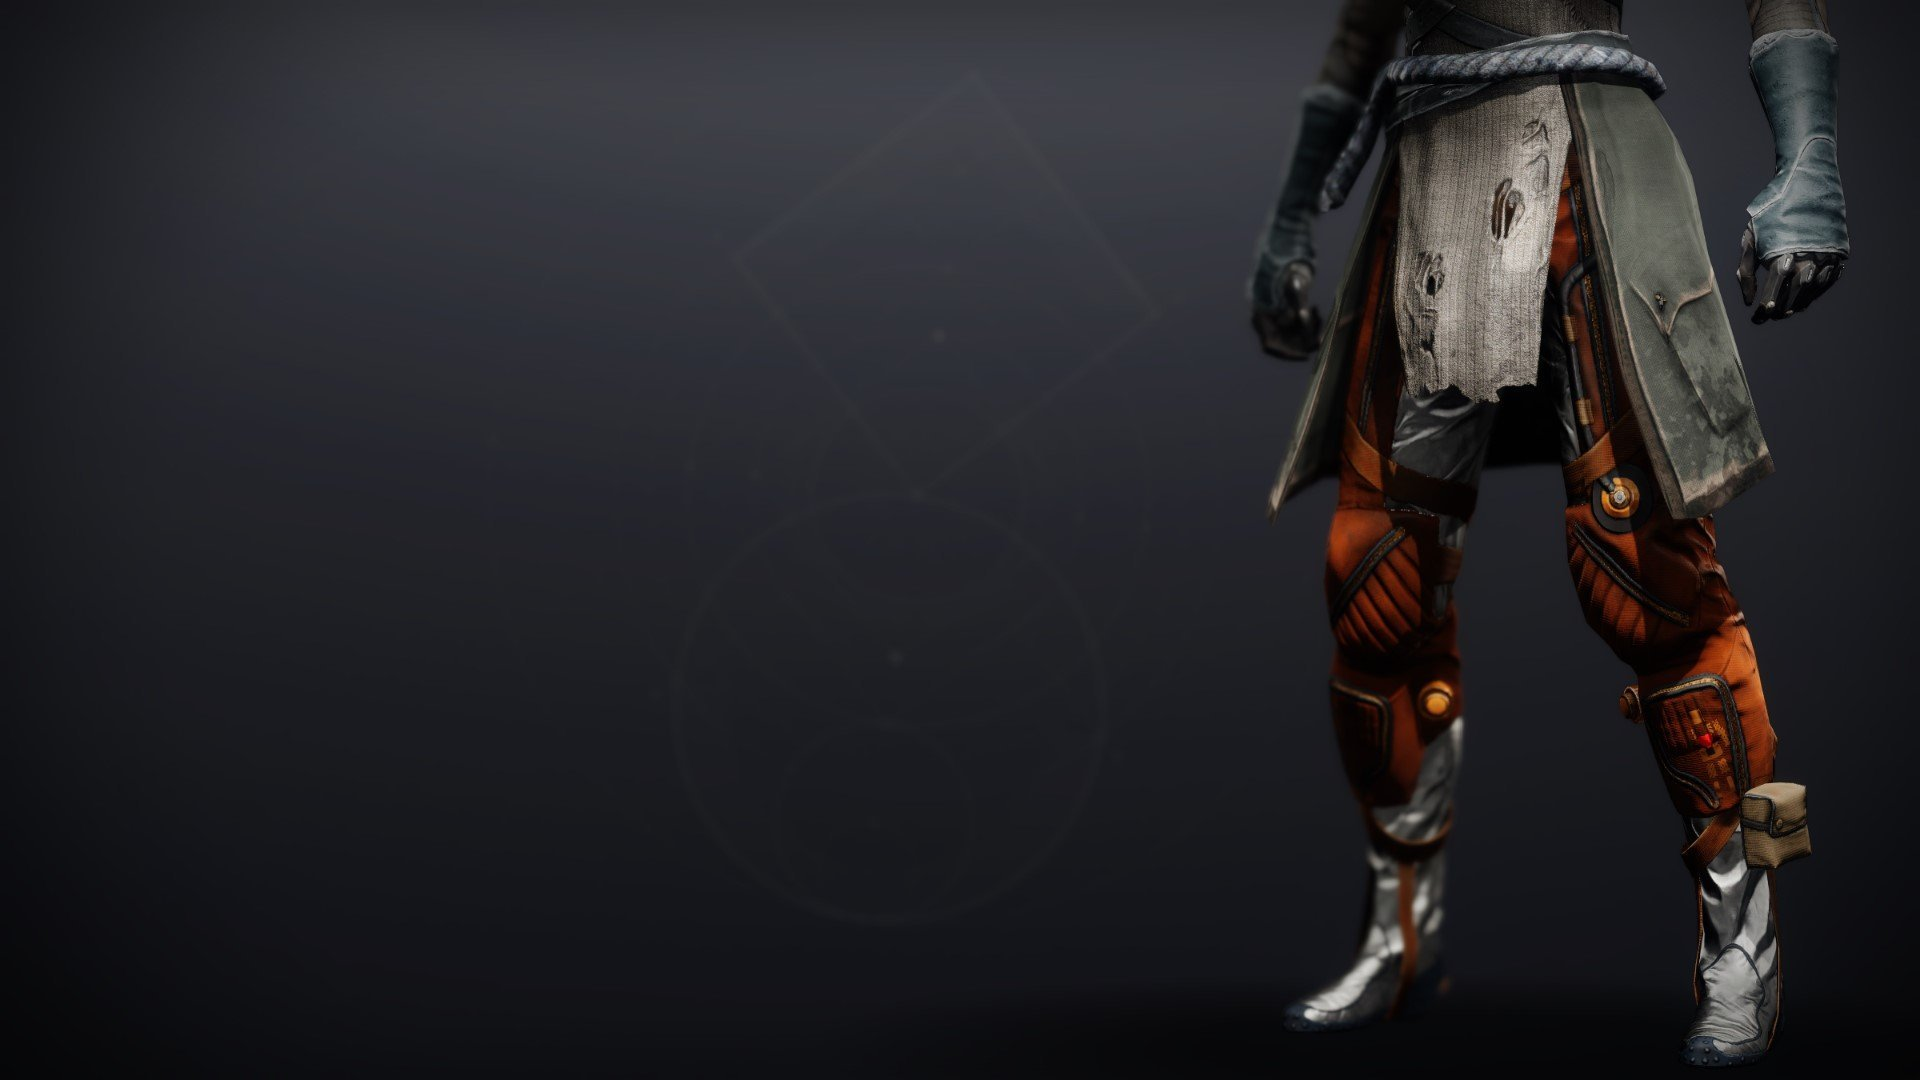 An in-game render of the Boots of the Assembler.